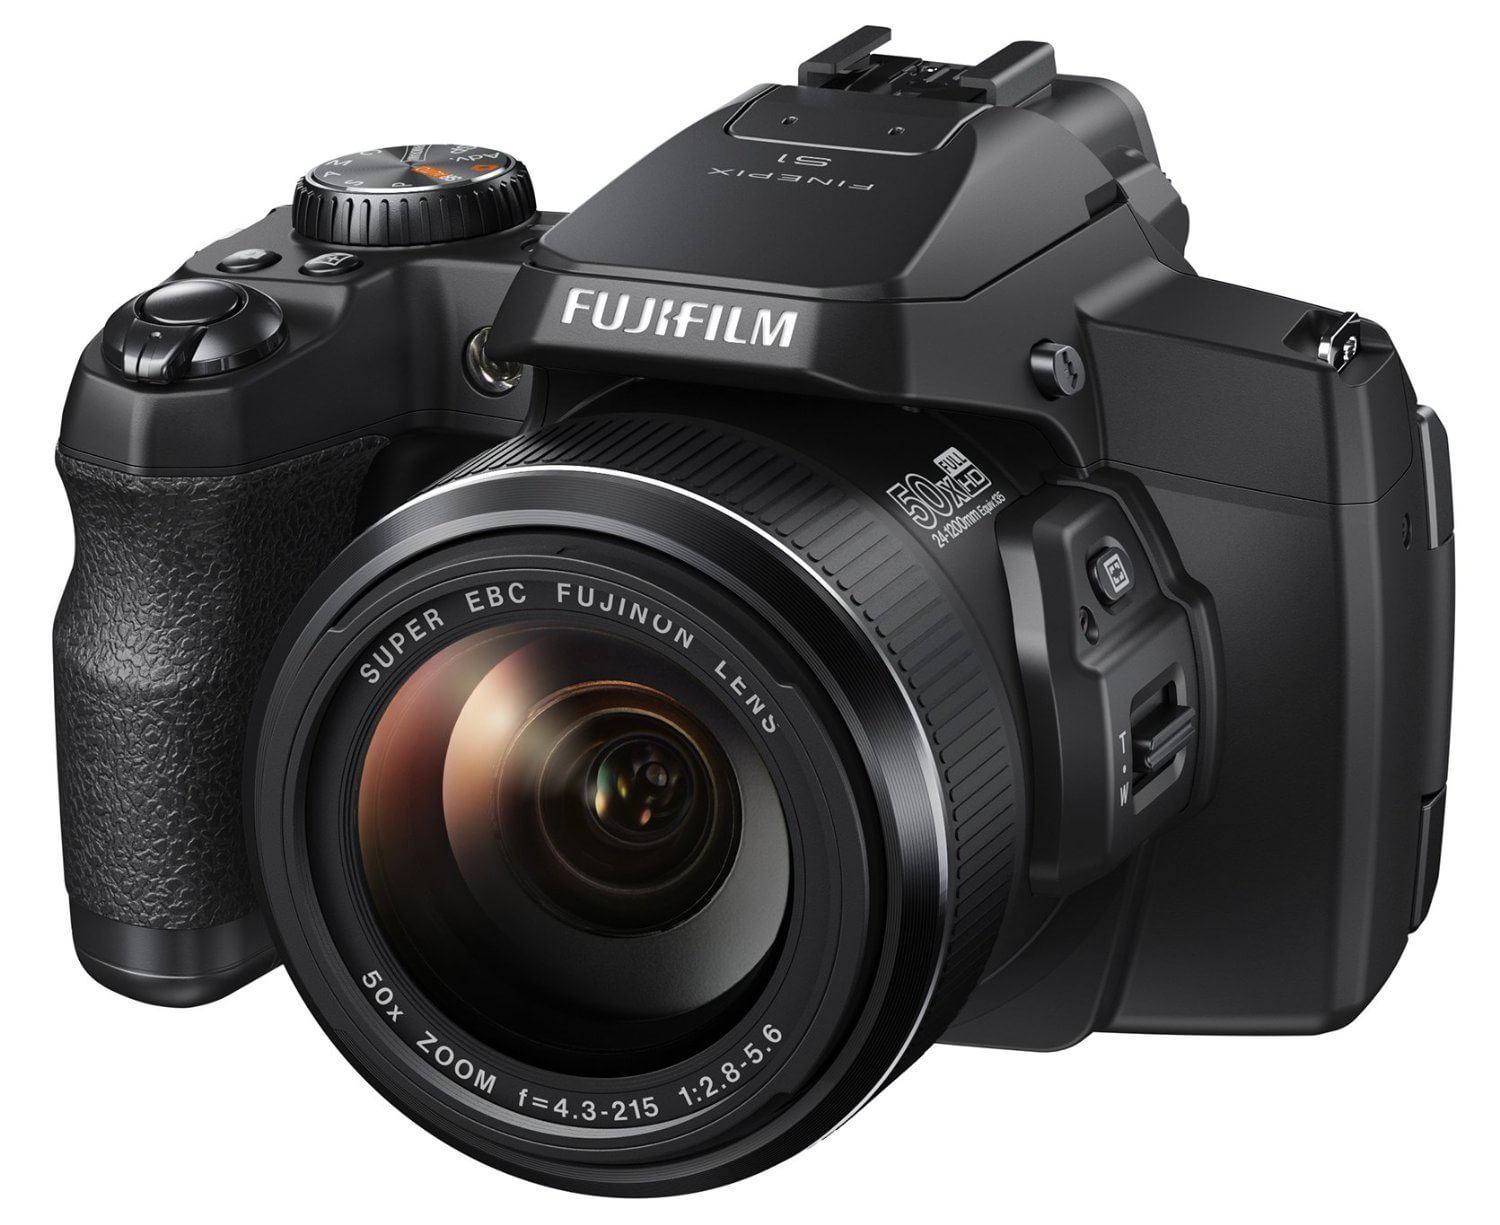 Fujifilm Finepix S1 Review Camera